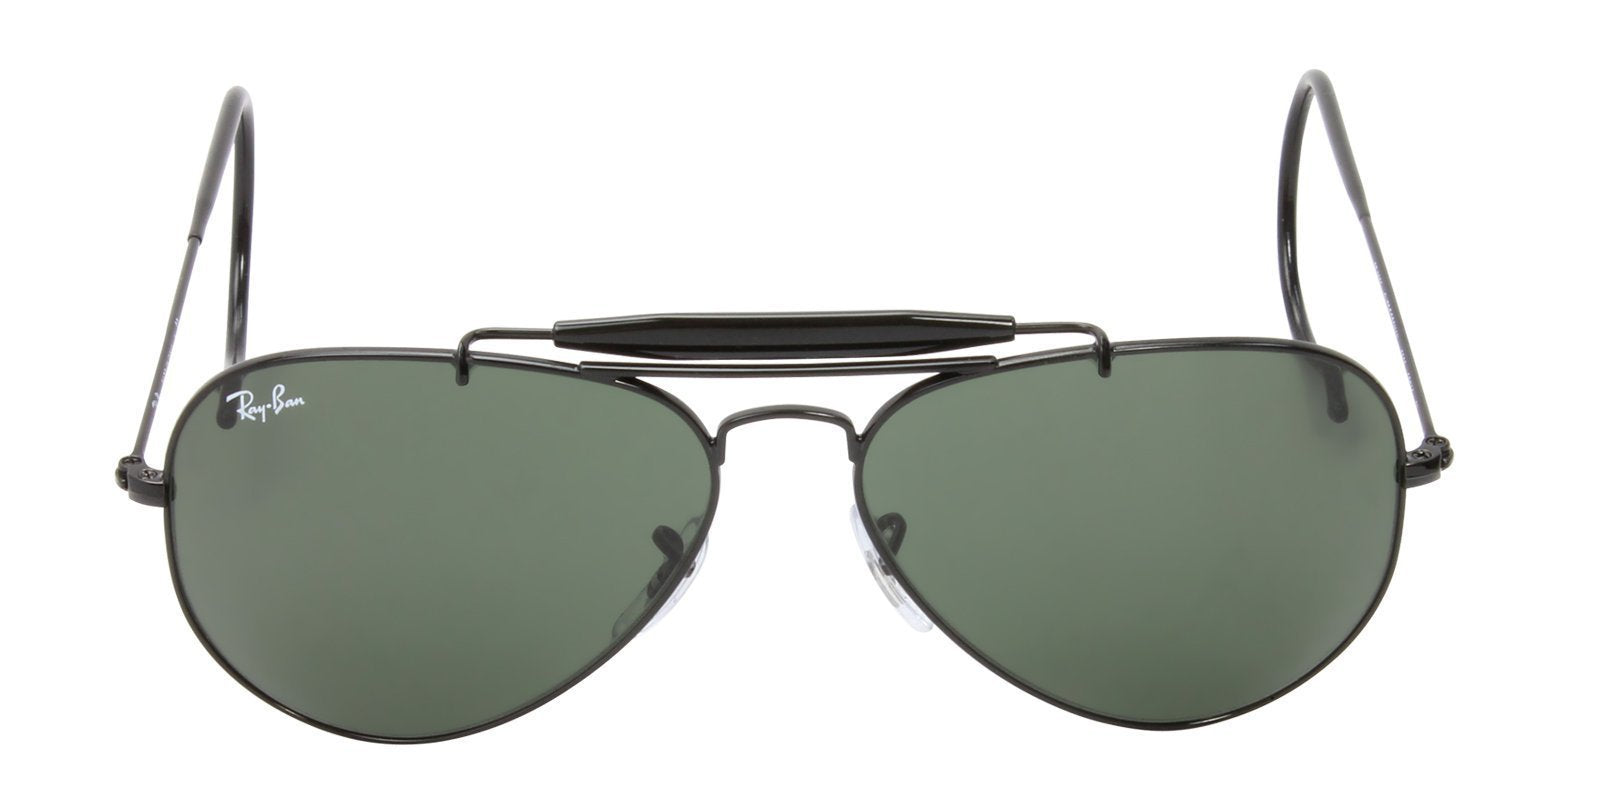 Ray Ban - RB3030 Black Aviator Unisex Sunglasses - 58mm-Sunglasses-Designer Eyes